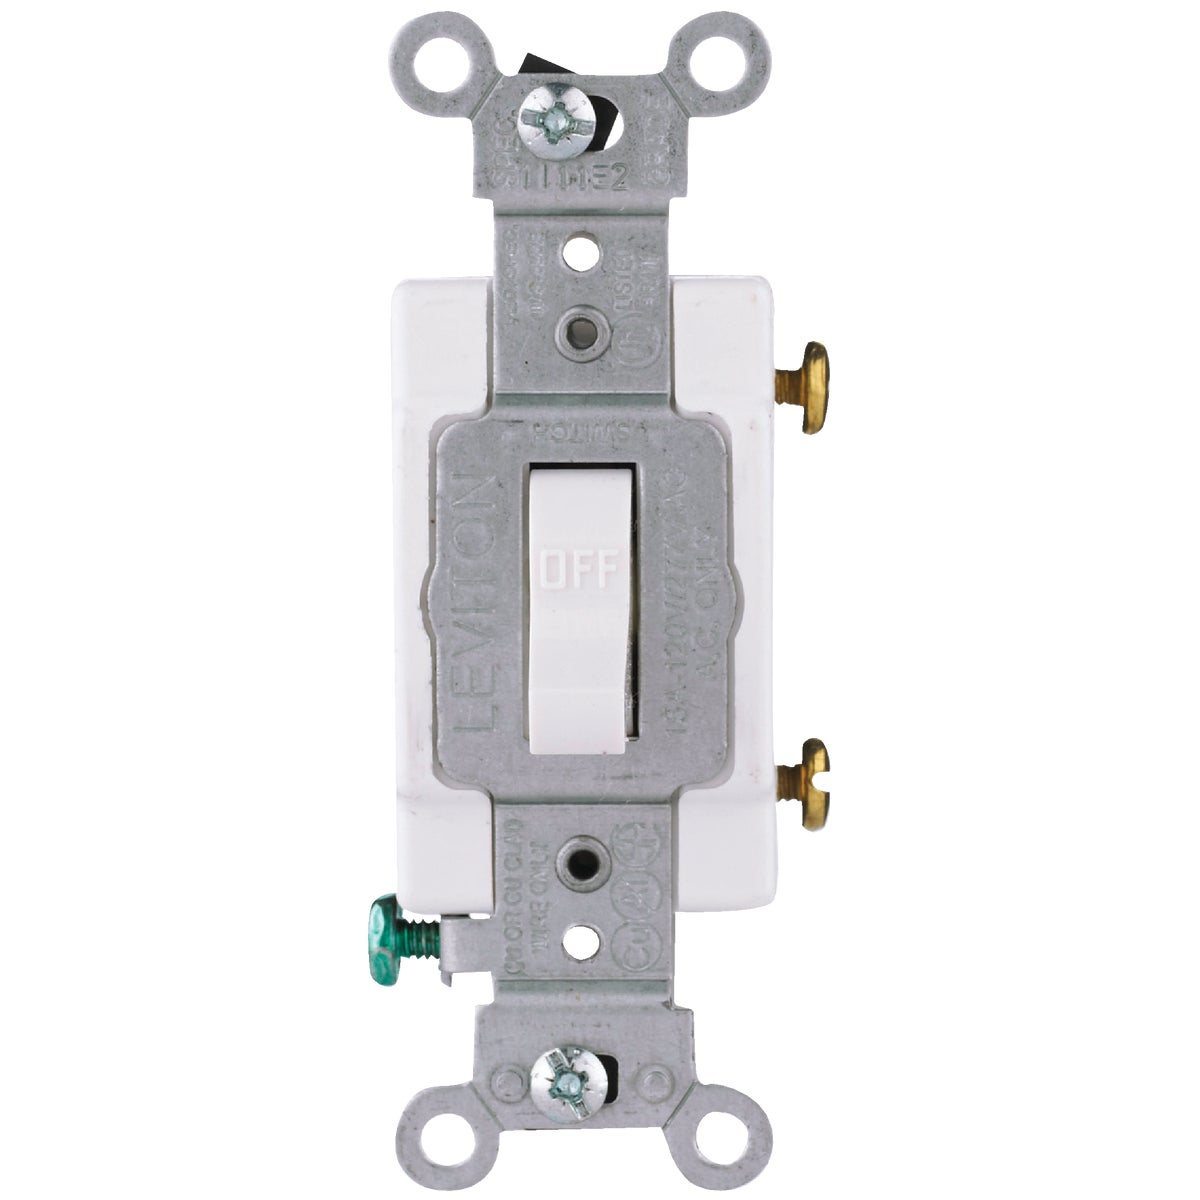 WHT 1-POLE GRND SWITCH - S02-CS115-2WS by Leviton Mfg Co